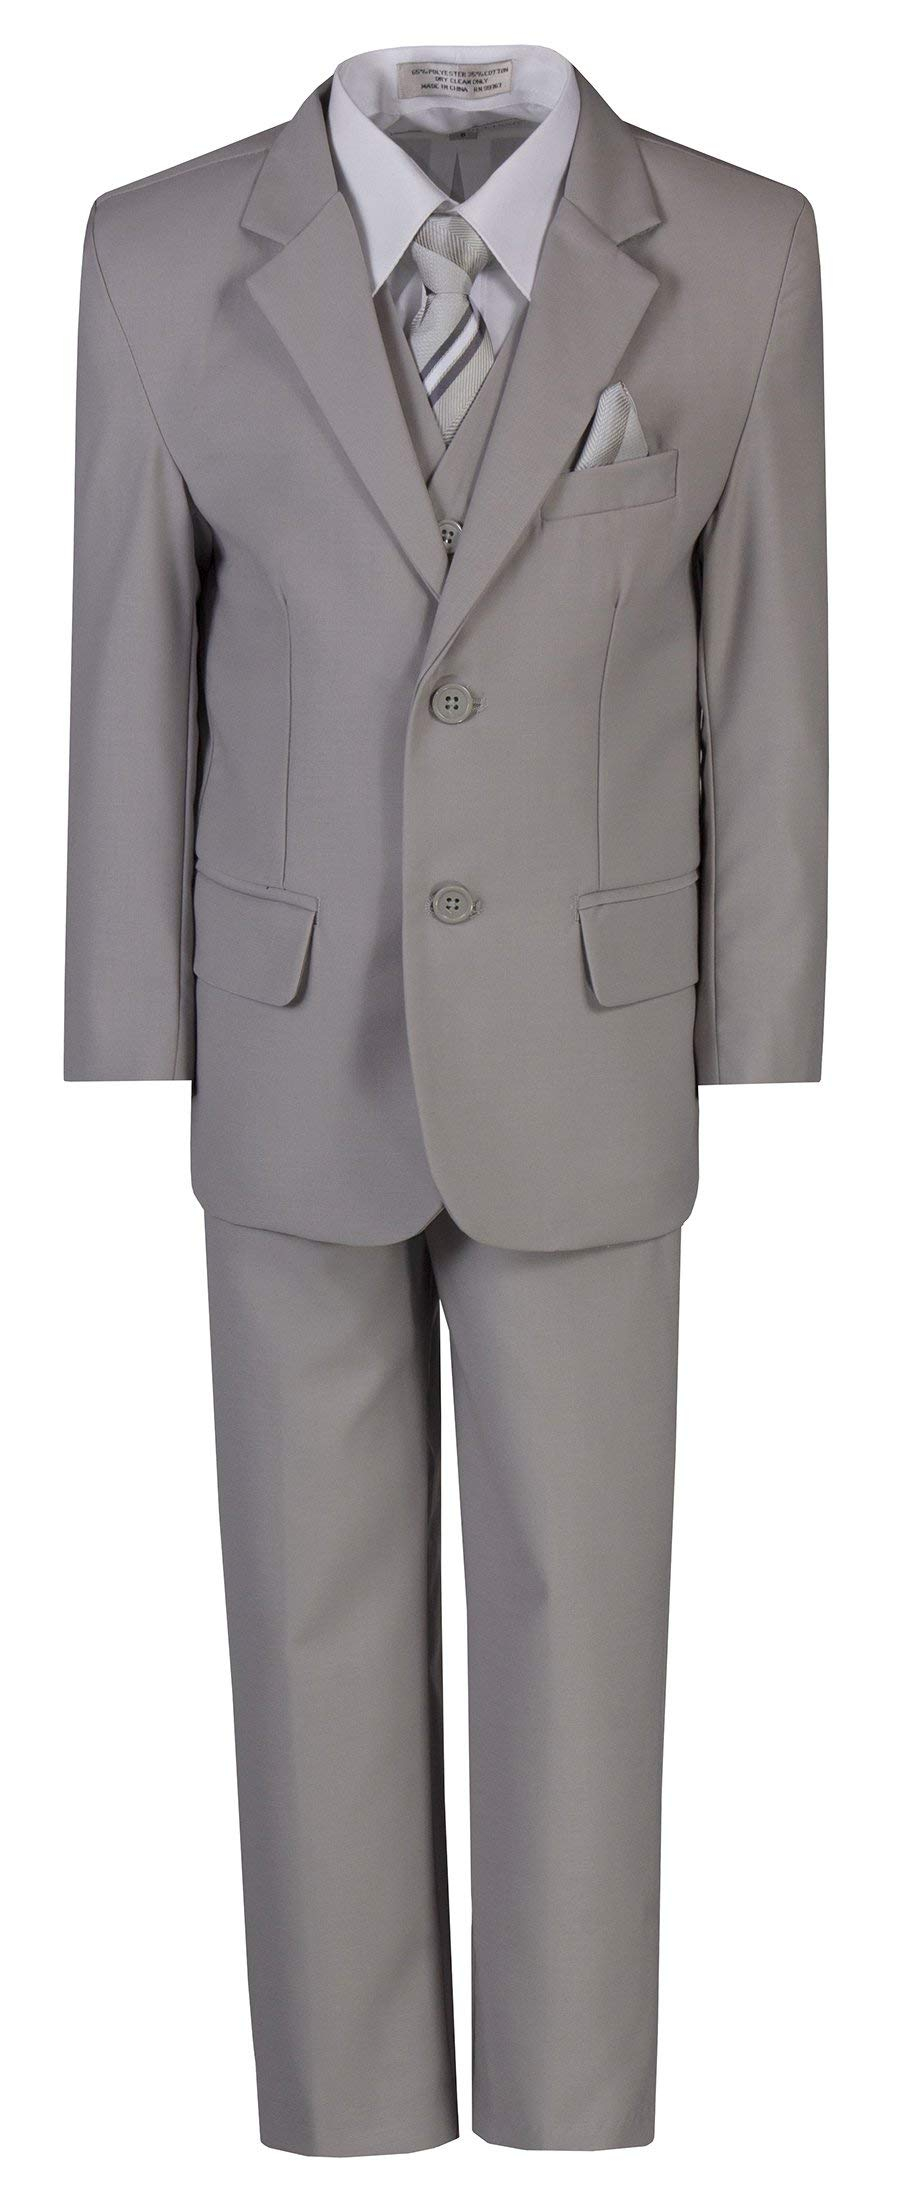 Boys 6 Piece Classic Suit with Neck Tie for Standard and Husky Sizes Light Gray